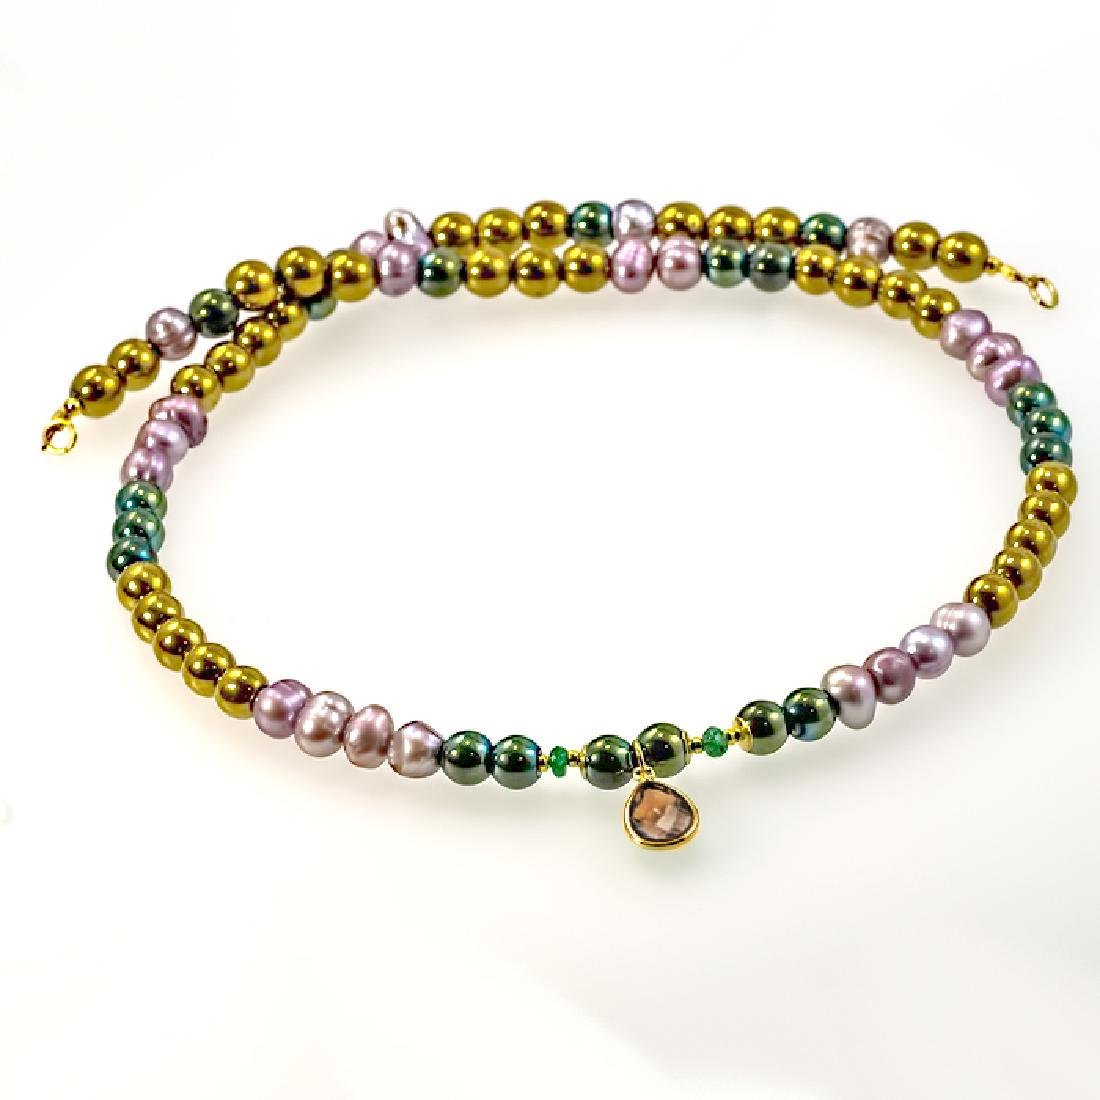 14K Multi-color Necklace with Emerald and Ash Topaz - 4